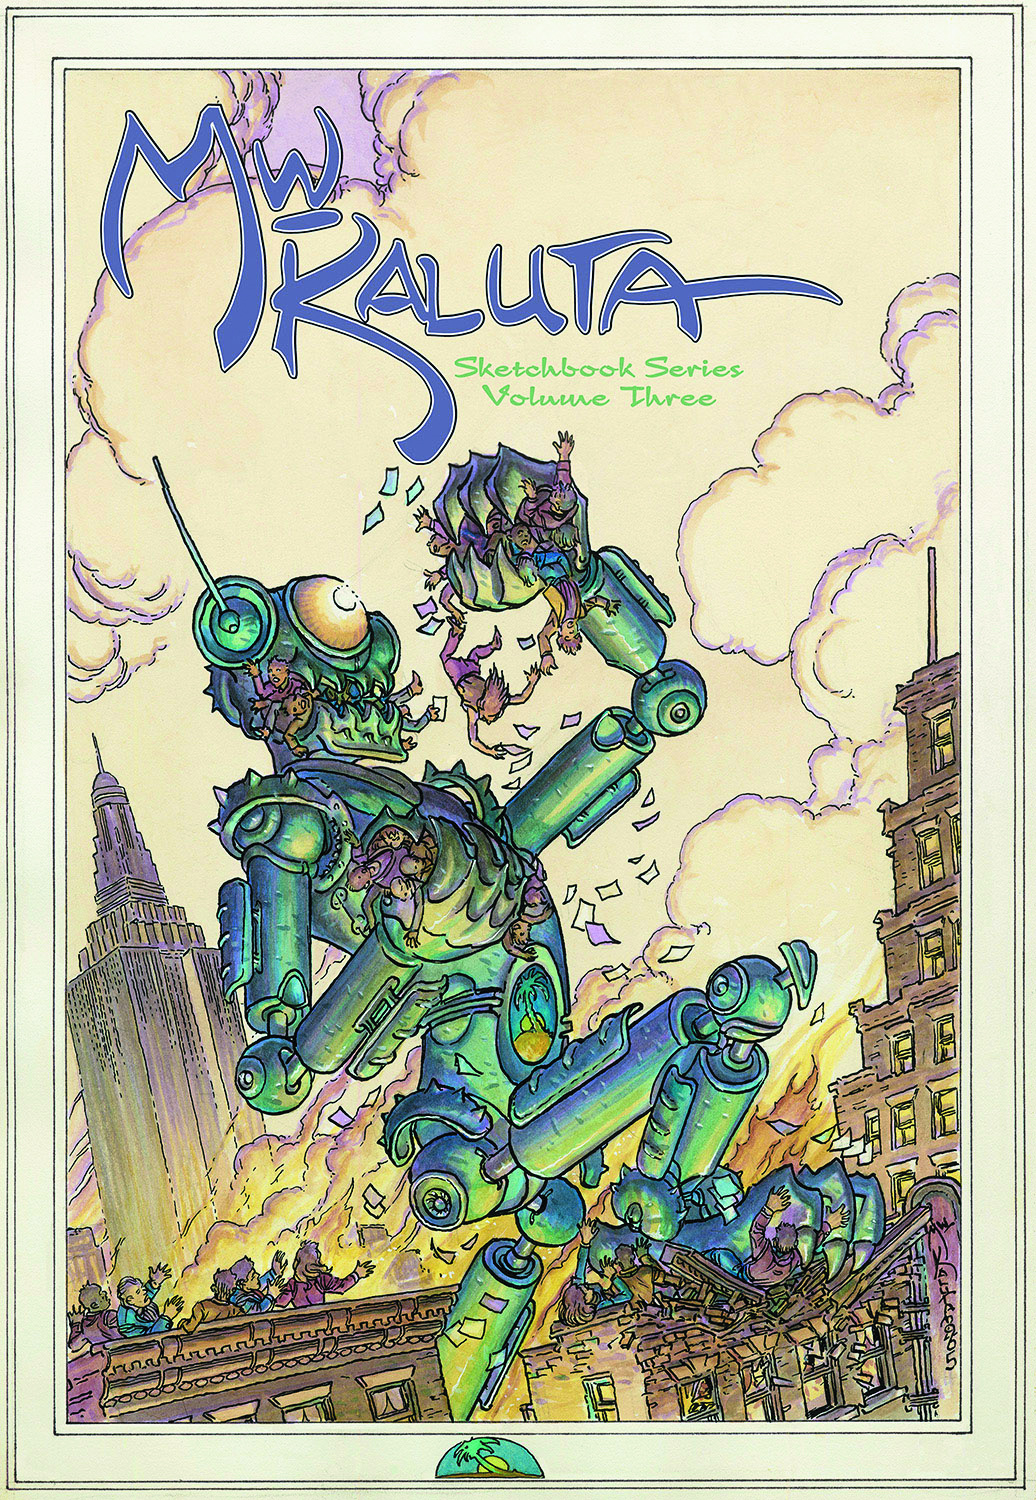 MICHAEL KALUTA SKETCHBOOK SERIES SC VOL 03